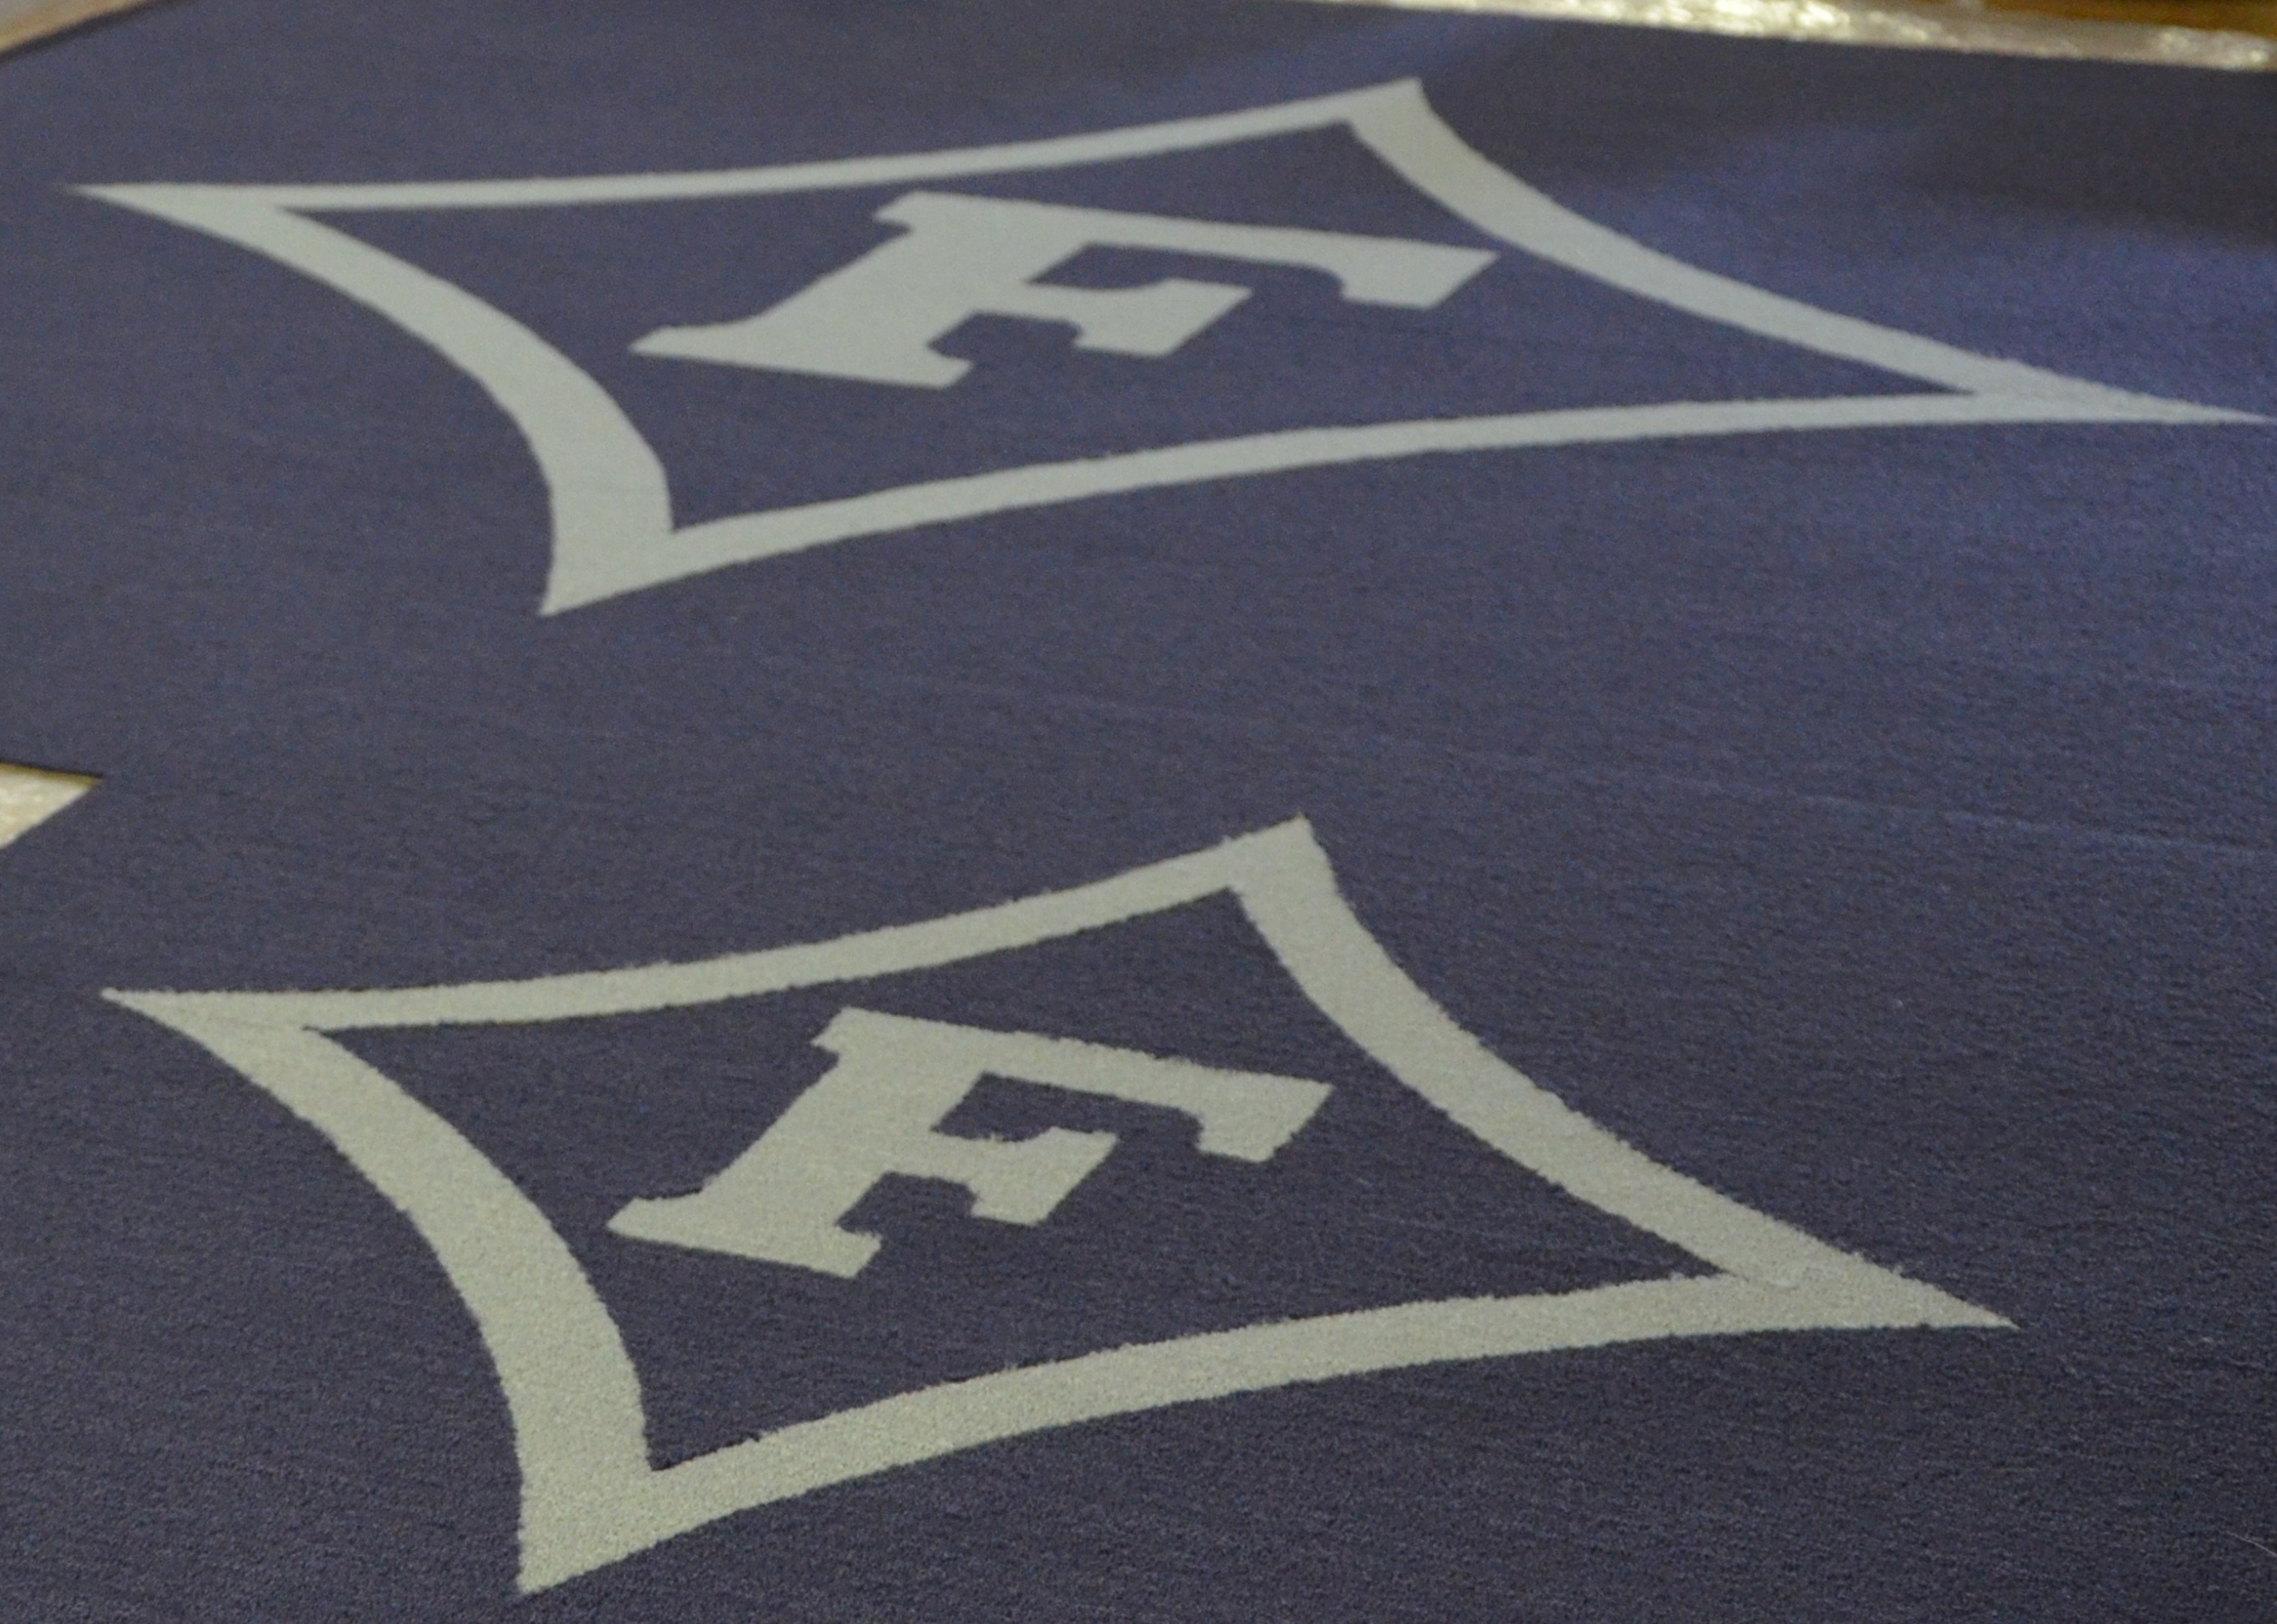 Custom manufactured carpet inserts for Furman University by McAbee's Carpet